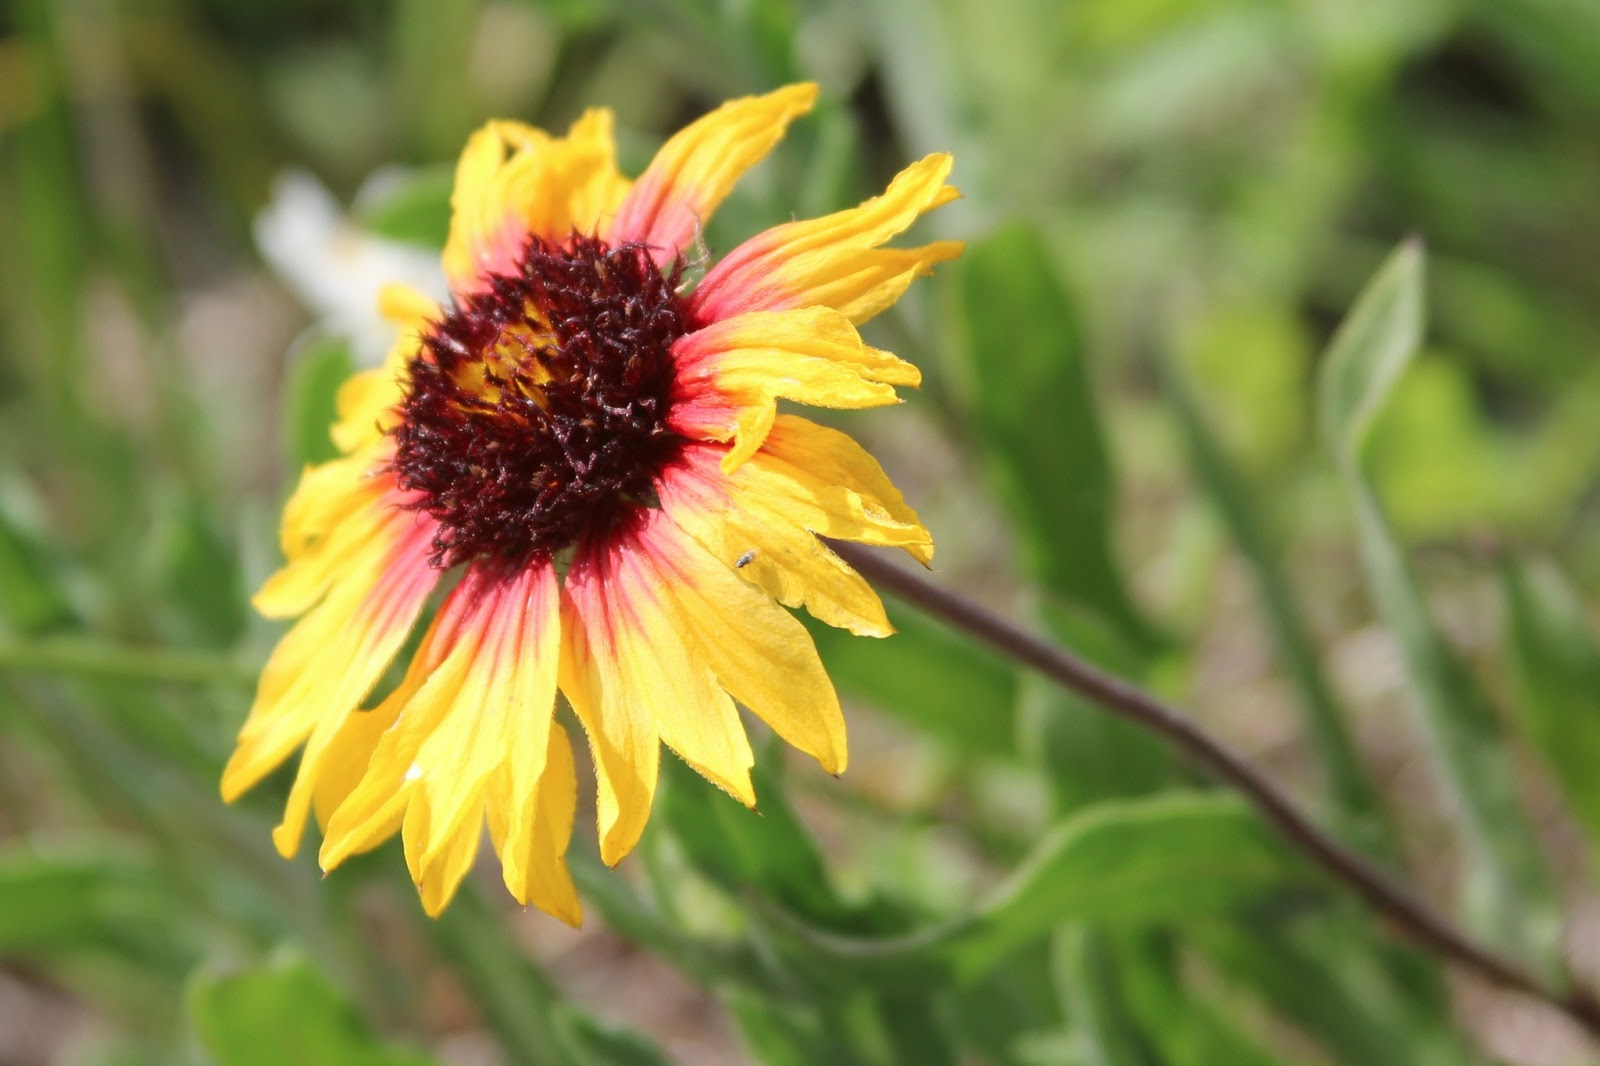 Yellow Indian Blanket Flower | ONE SNAP